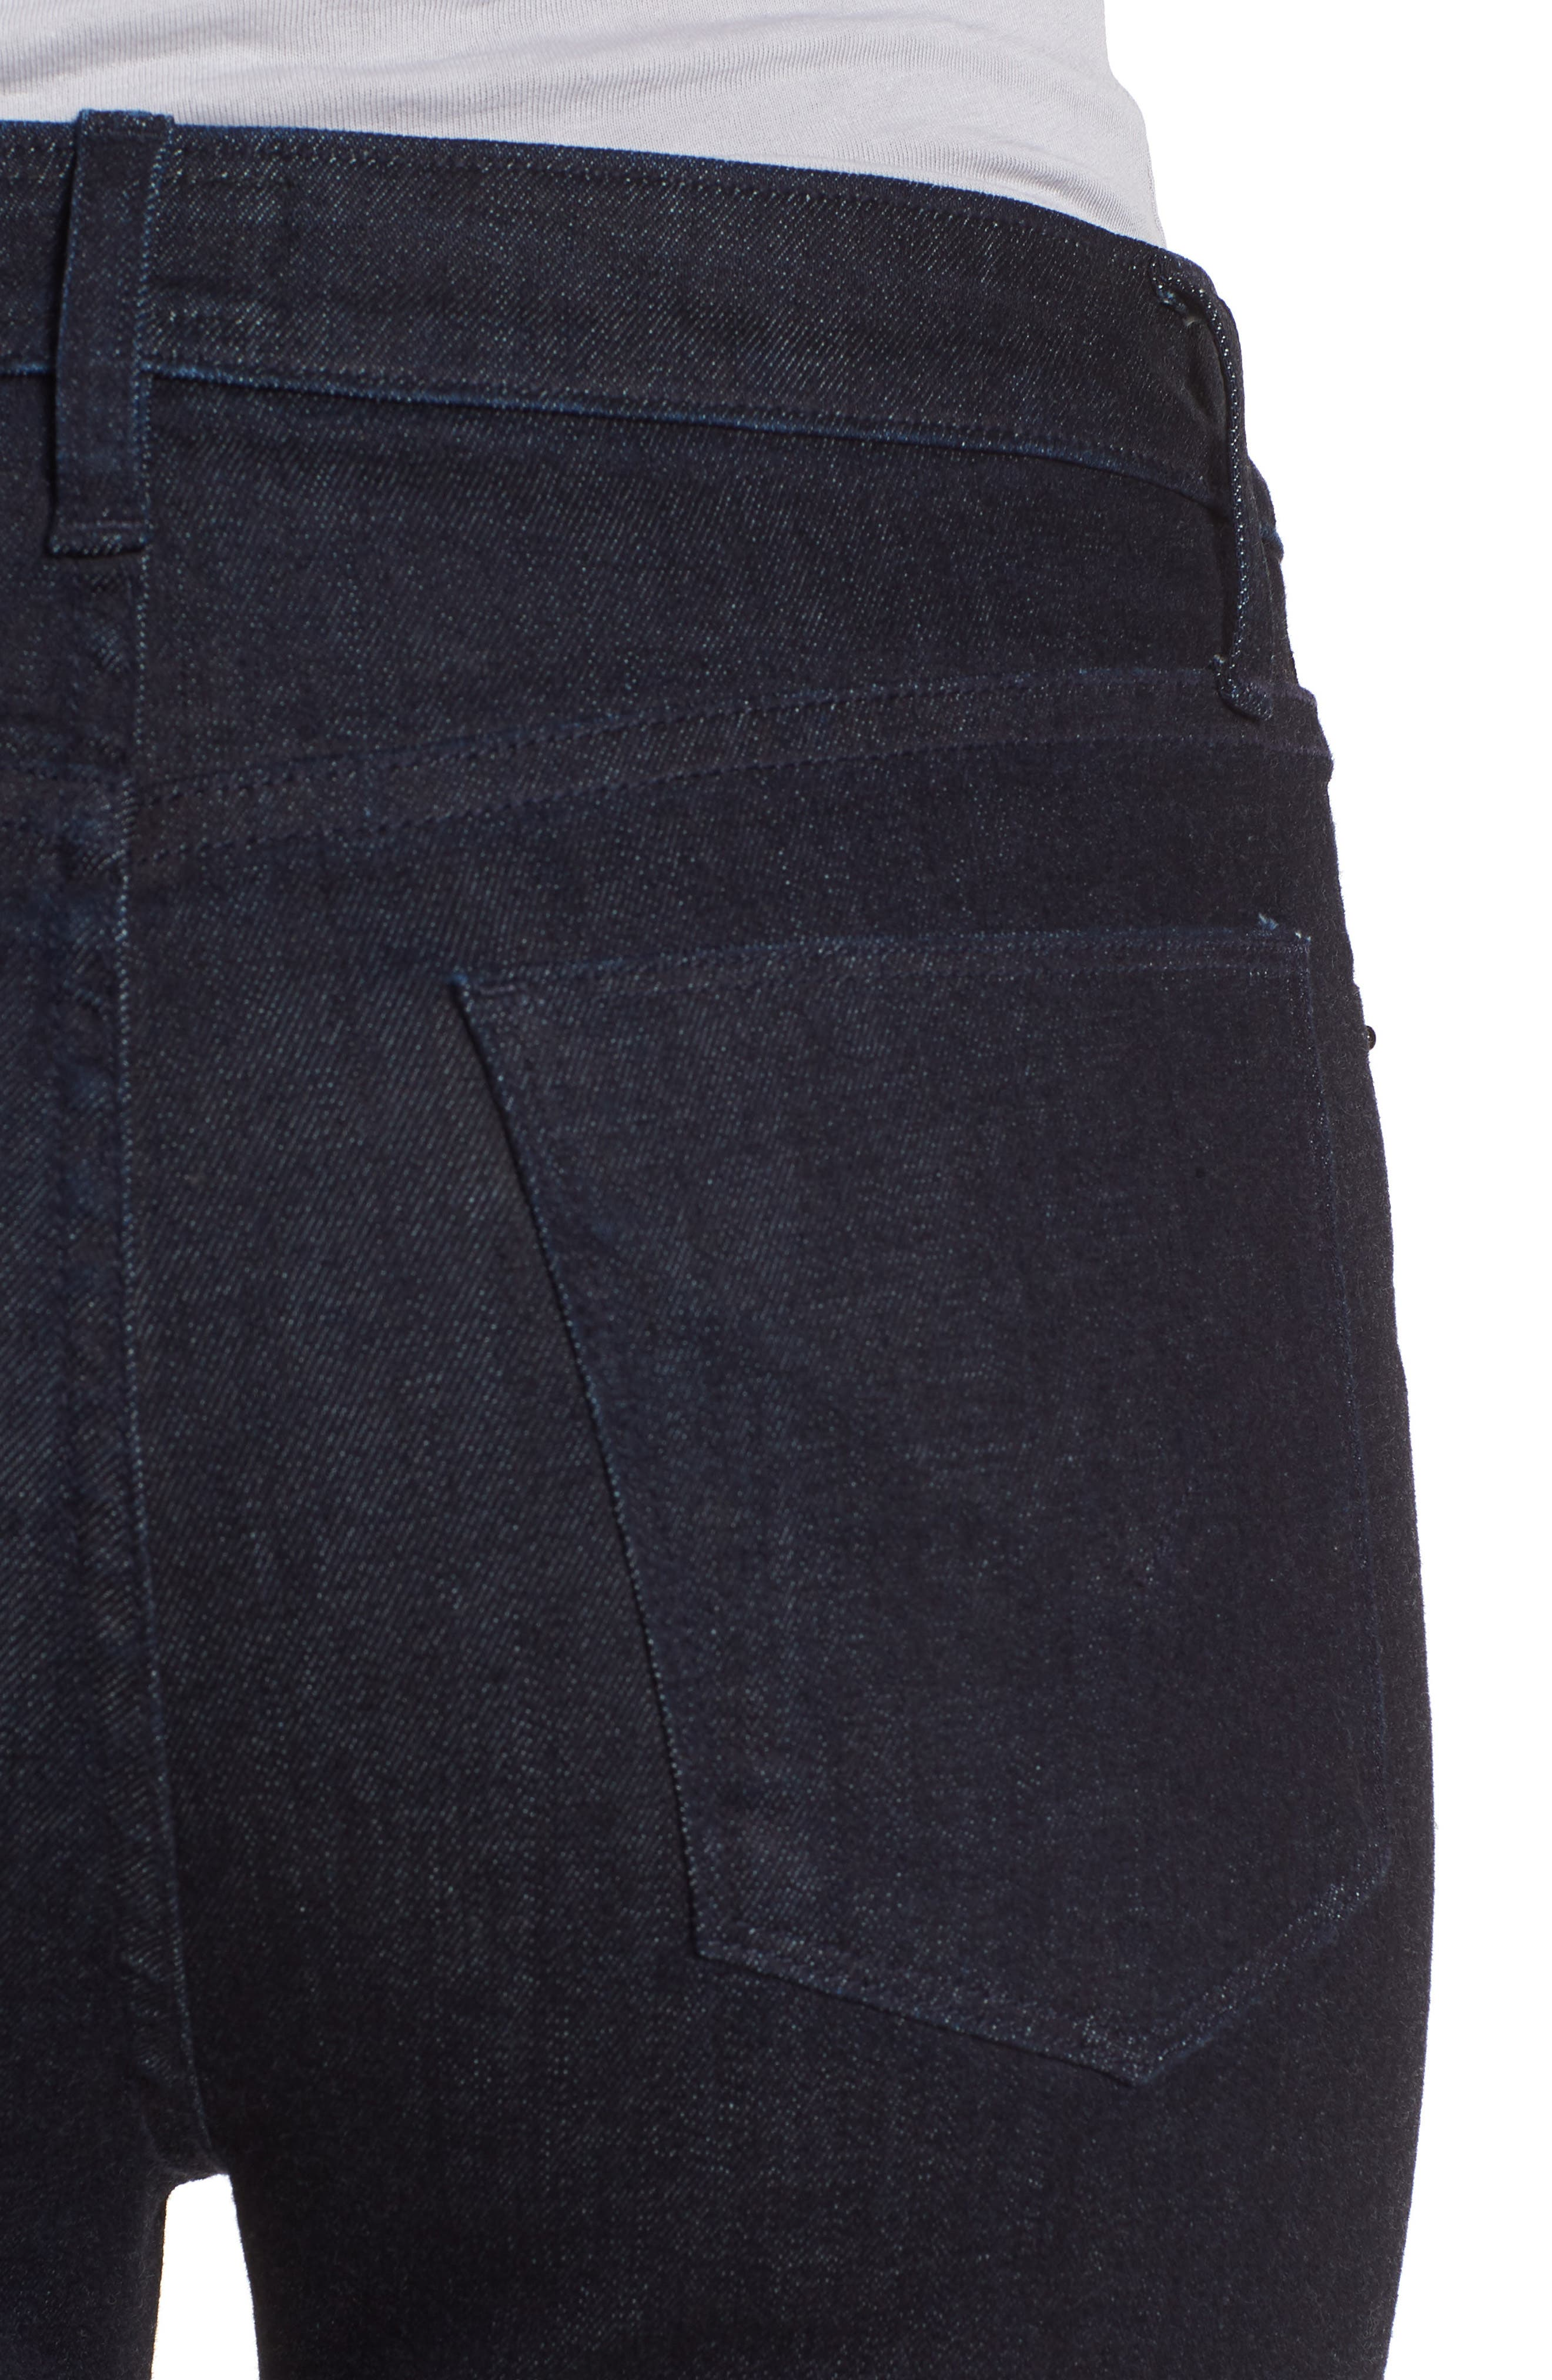 Holly High Waist Flare Jeans,                             Alternate thumbnail 4, color,                             INFUSE